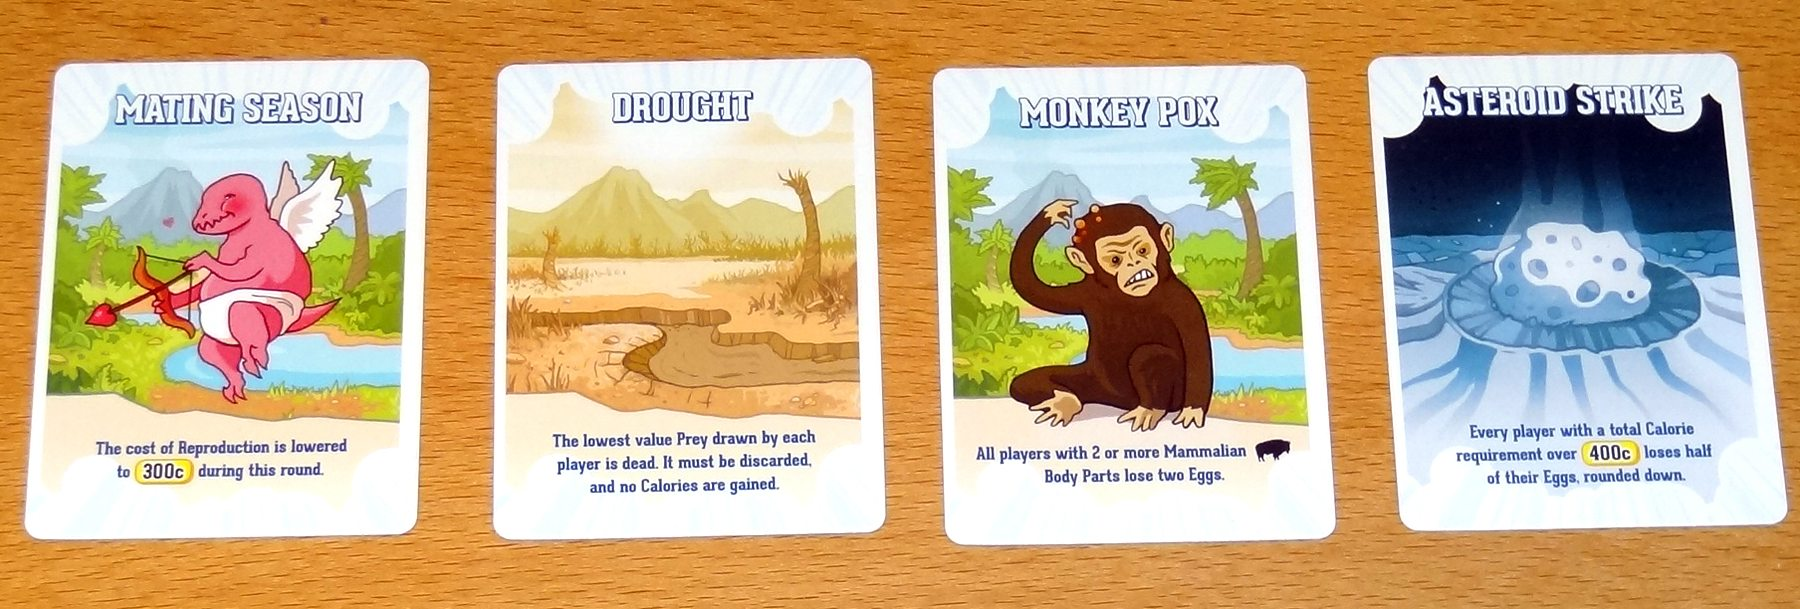 Velociraptor! Cannibalism! climate cards